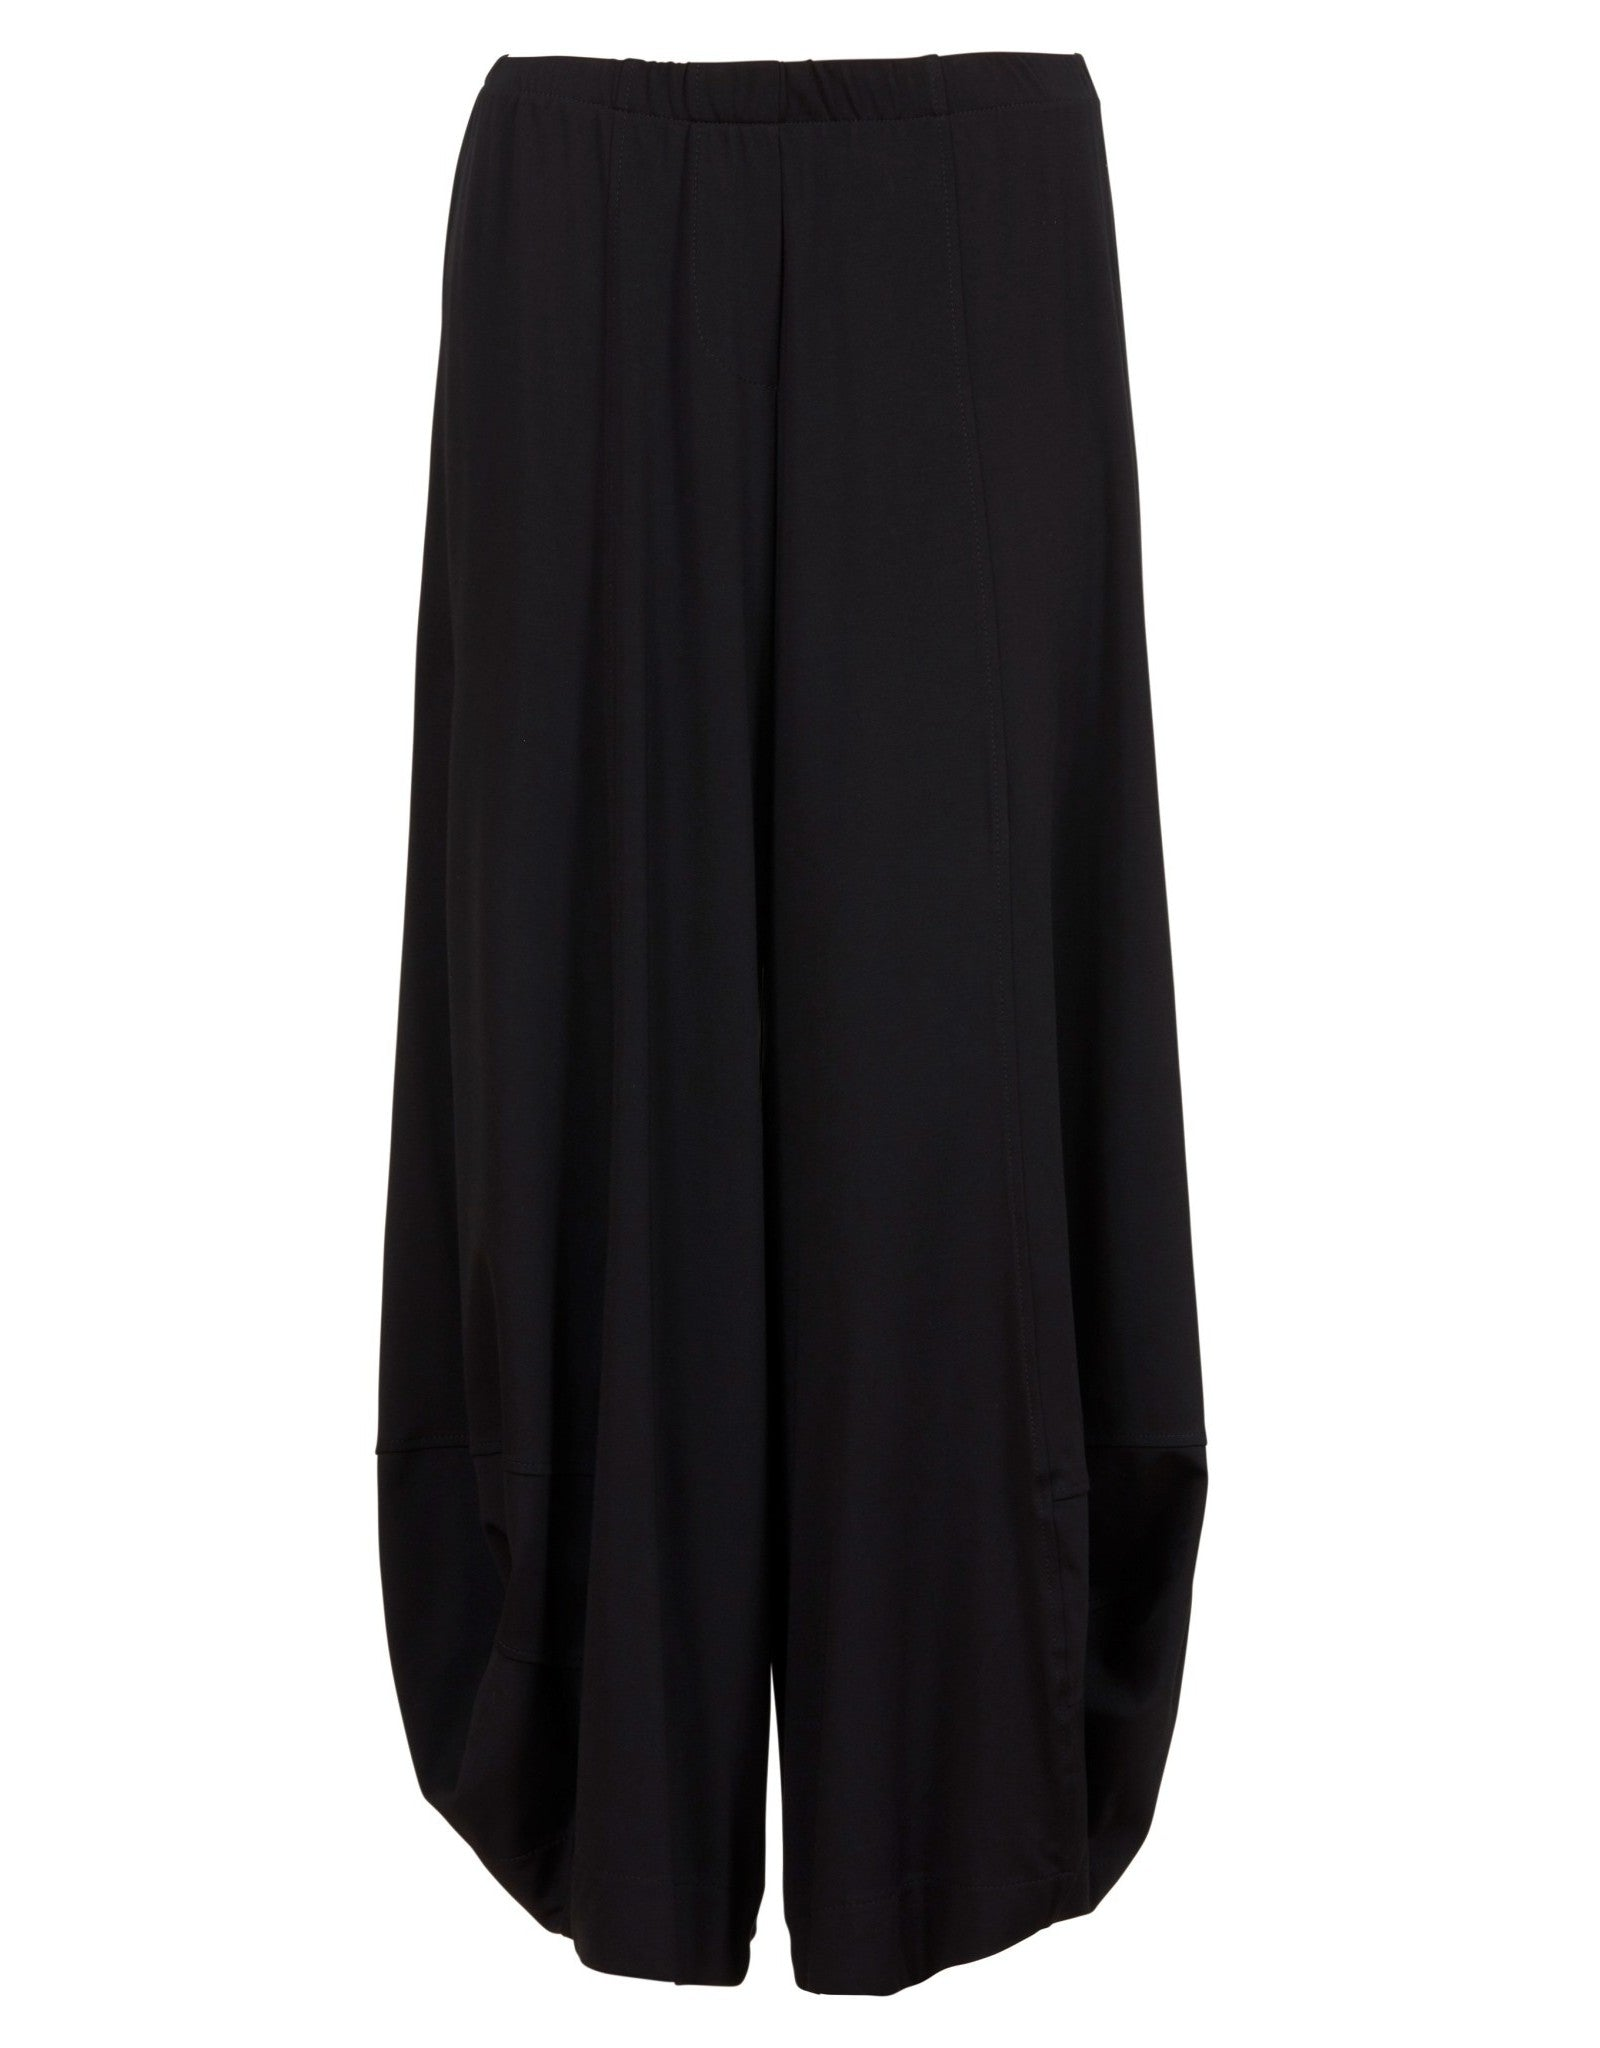 Alembika Black Trousers SP010B